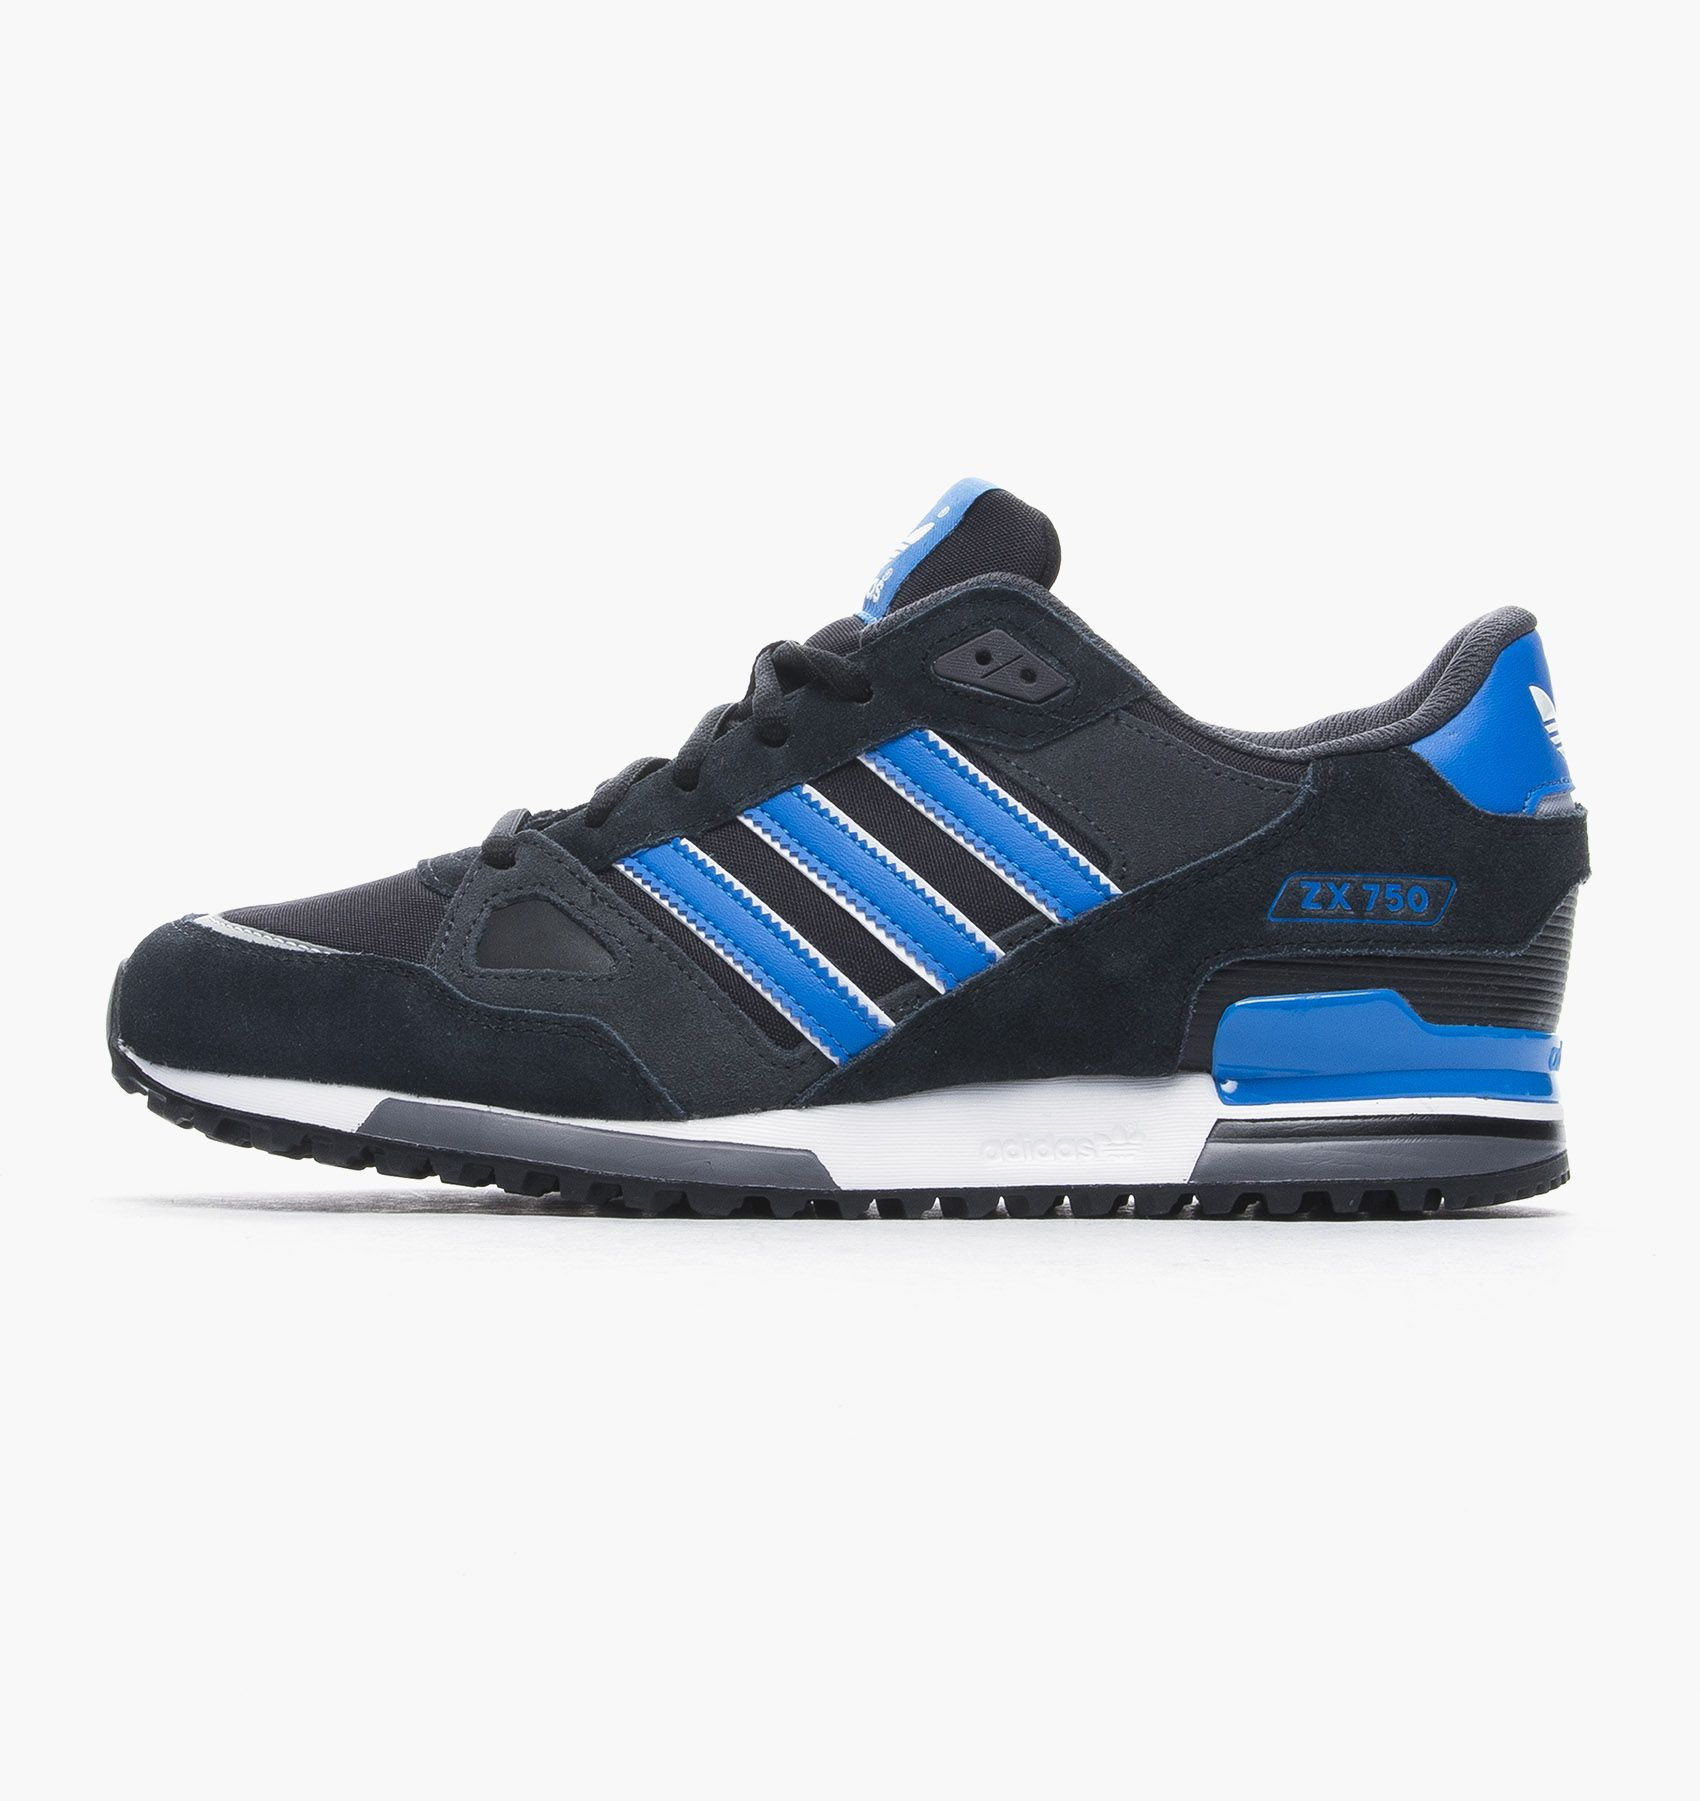 Adidas New Collection | Mens Adidas Originals Zx 750 Running